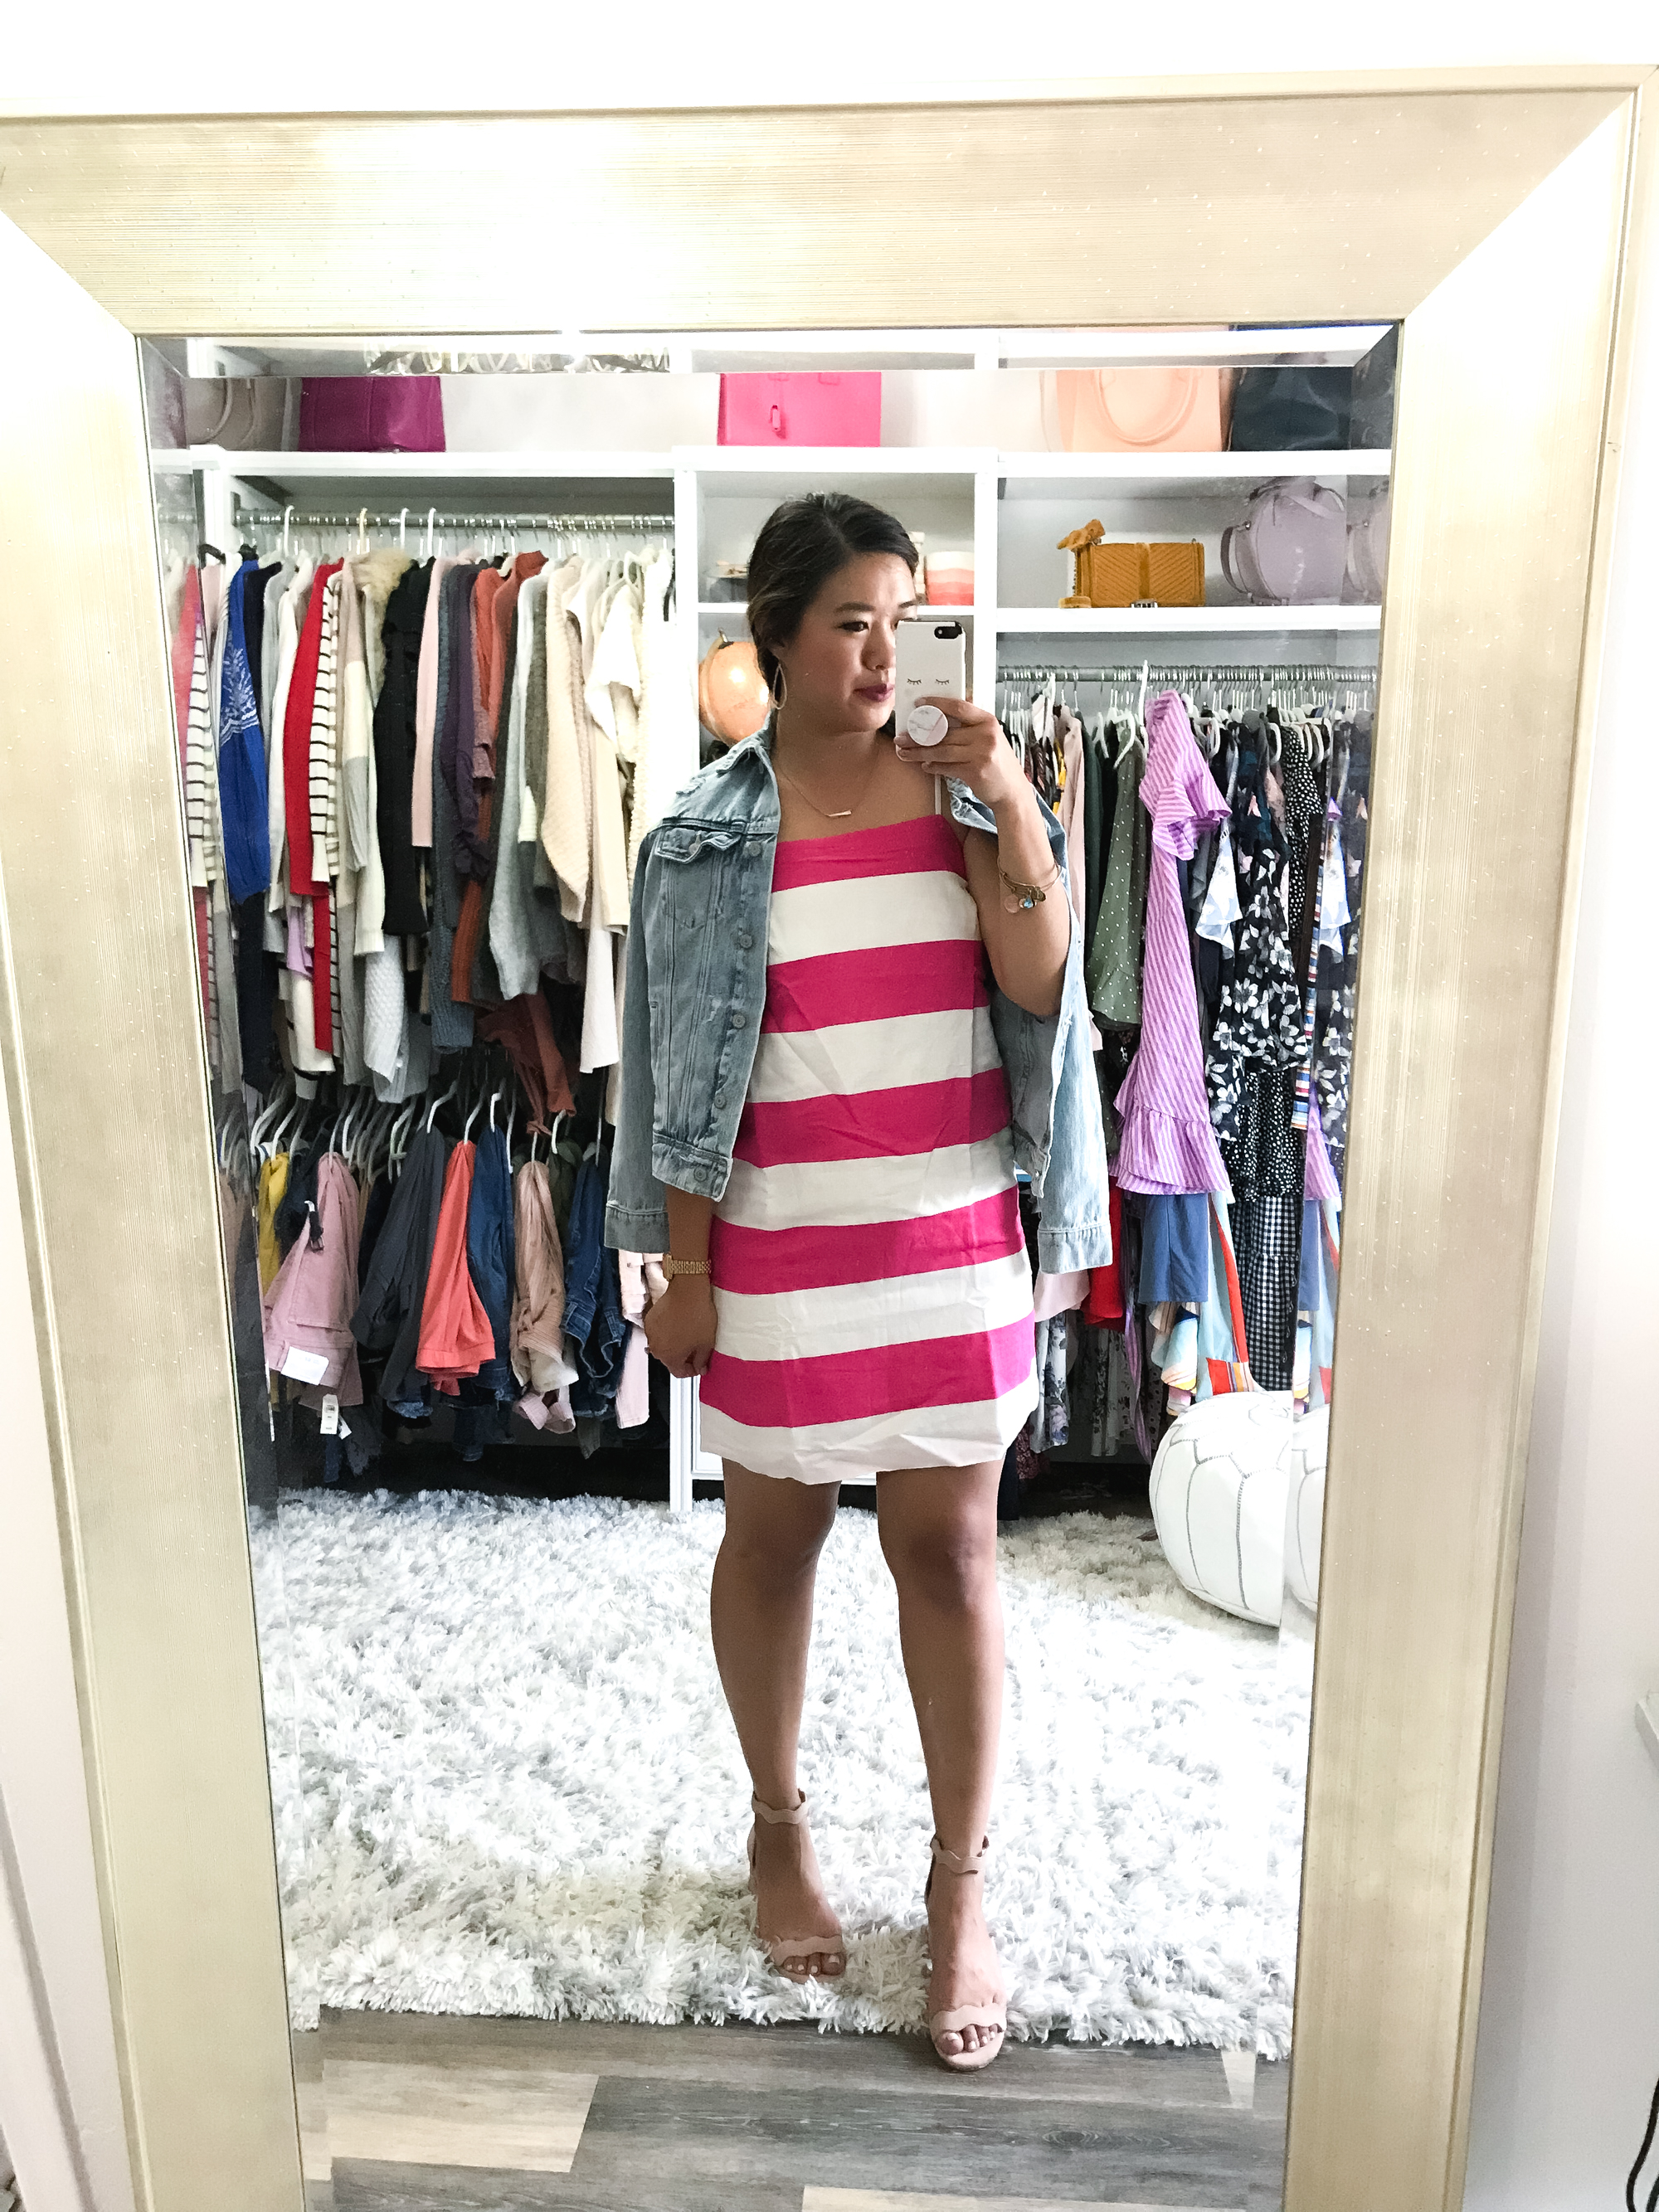 b866fcdbe0a9 CeCe Carnival Stripe Dress – size 6 – This dress is SUPER fun with the hot  pink and white stripes! Would be super cute to wear for a fun summer  concert or ...